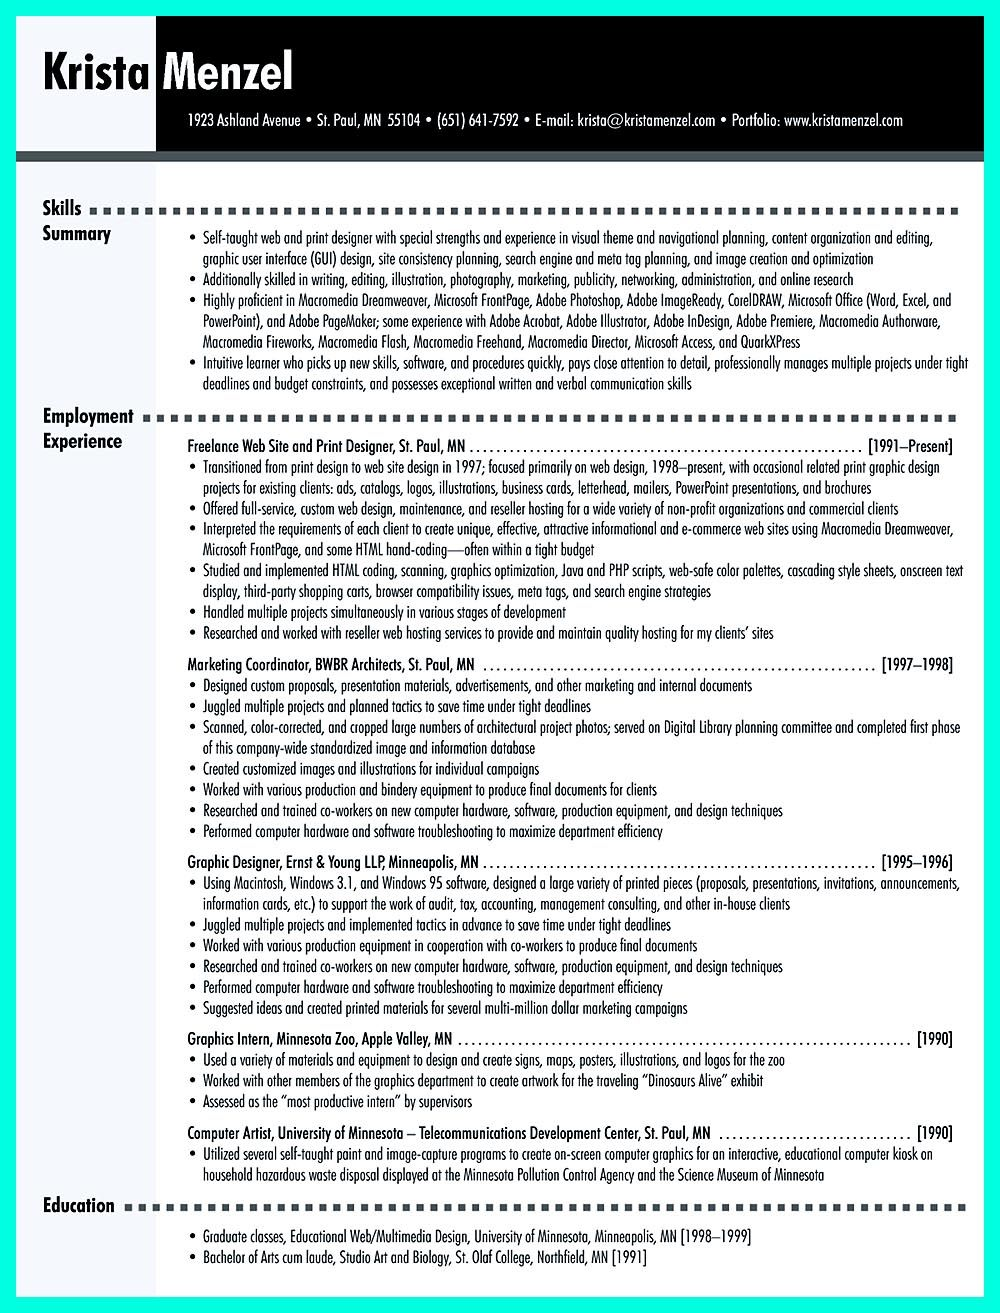 data scientist resume include everything about your education  skill  qualification and your